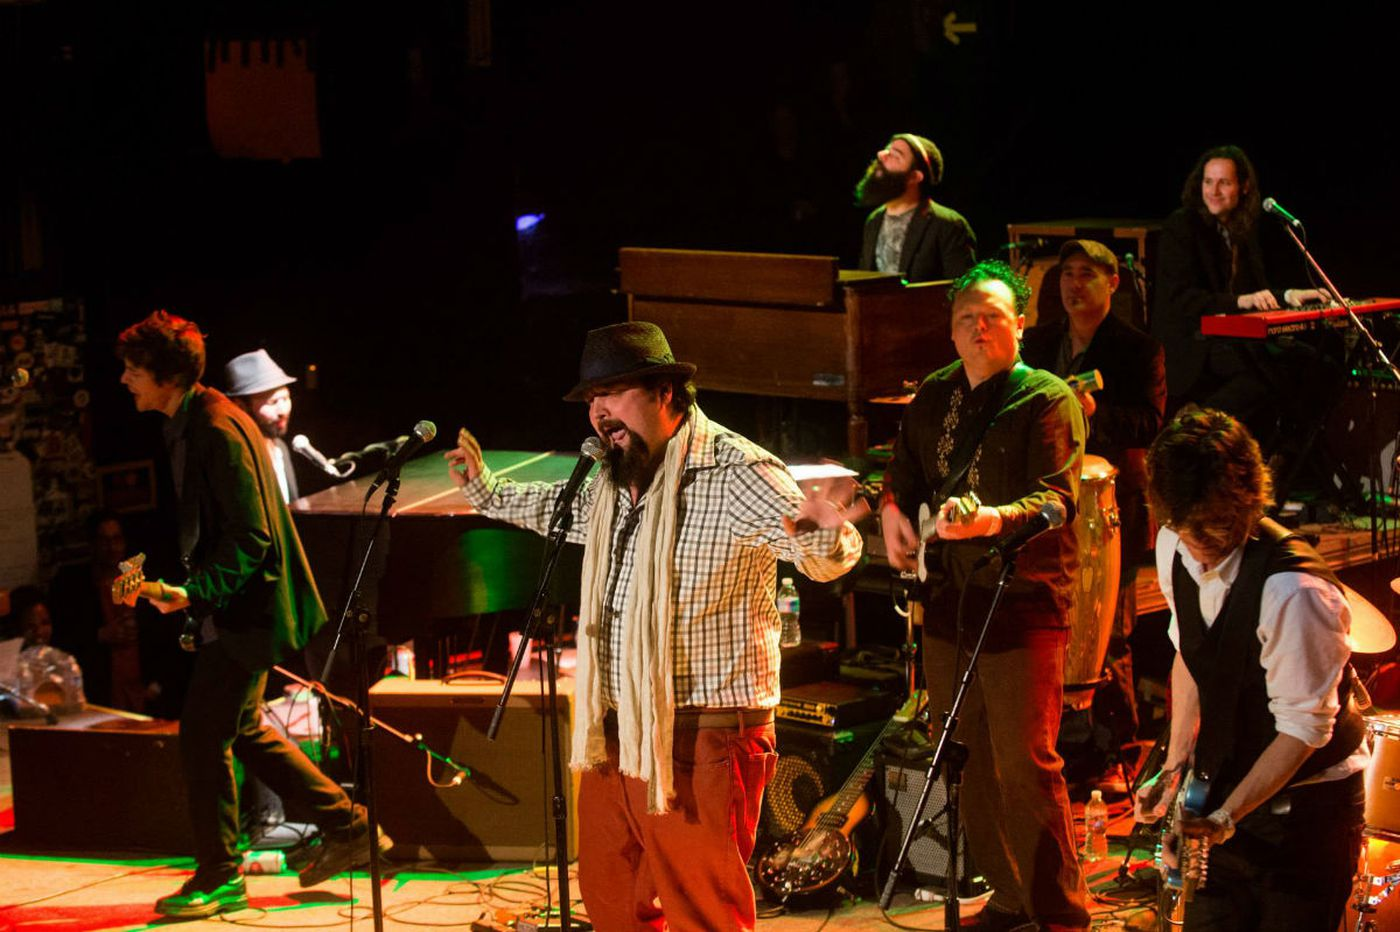 Philly musicians form super group to pay tribute to The Band's 'The Last Waltz'